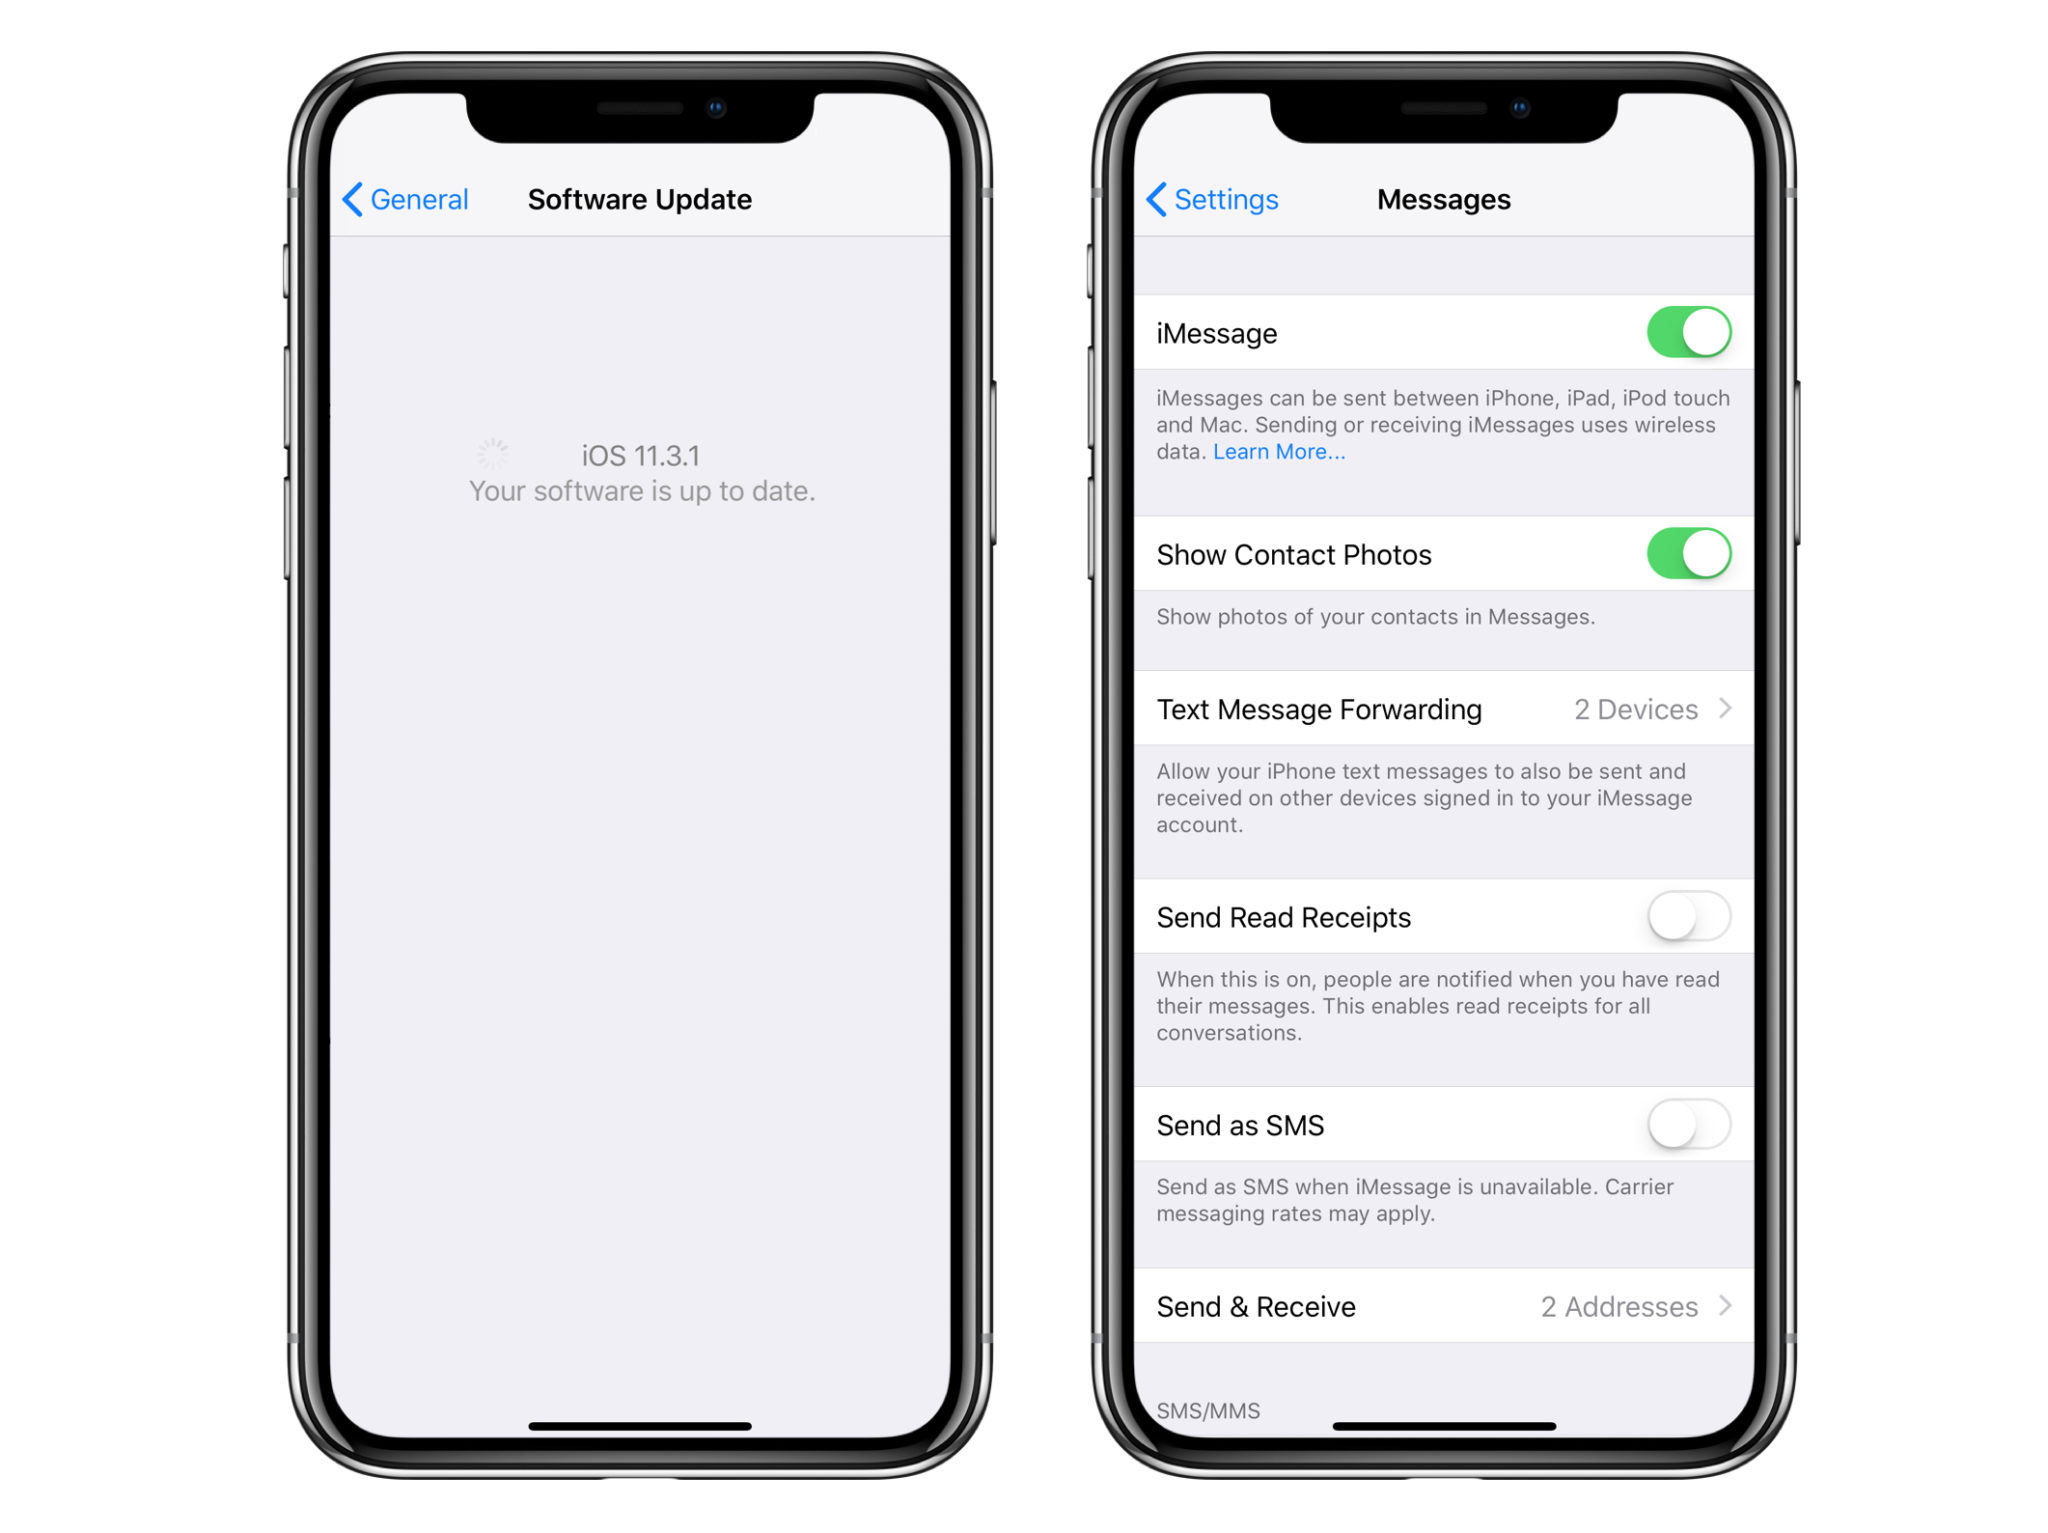 How to fix 'Messages in iCloud is currently disabled' error